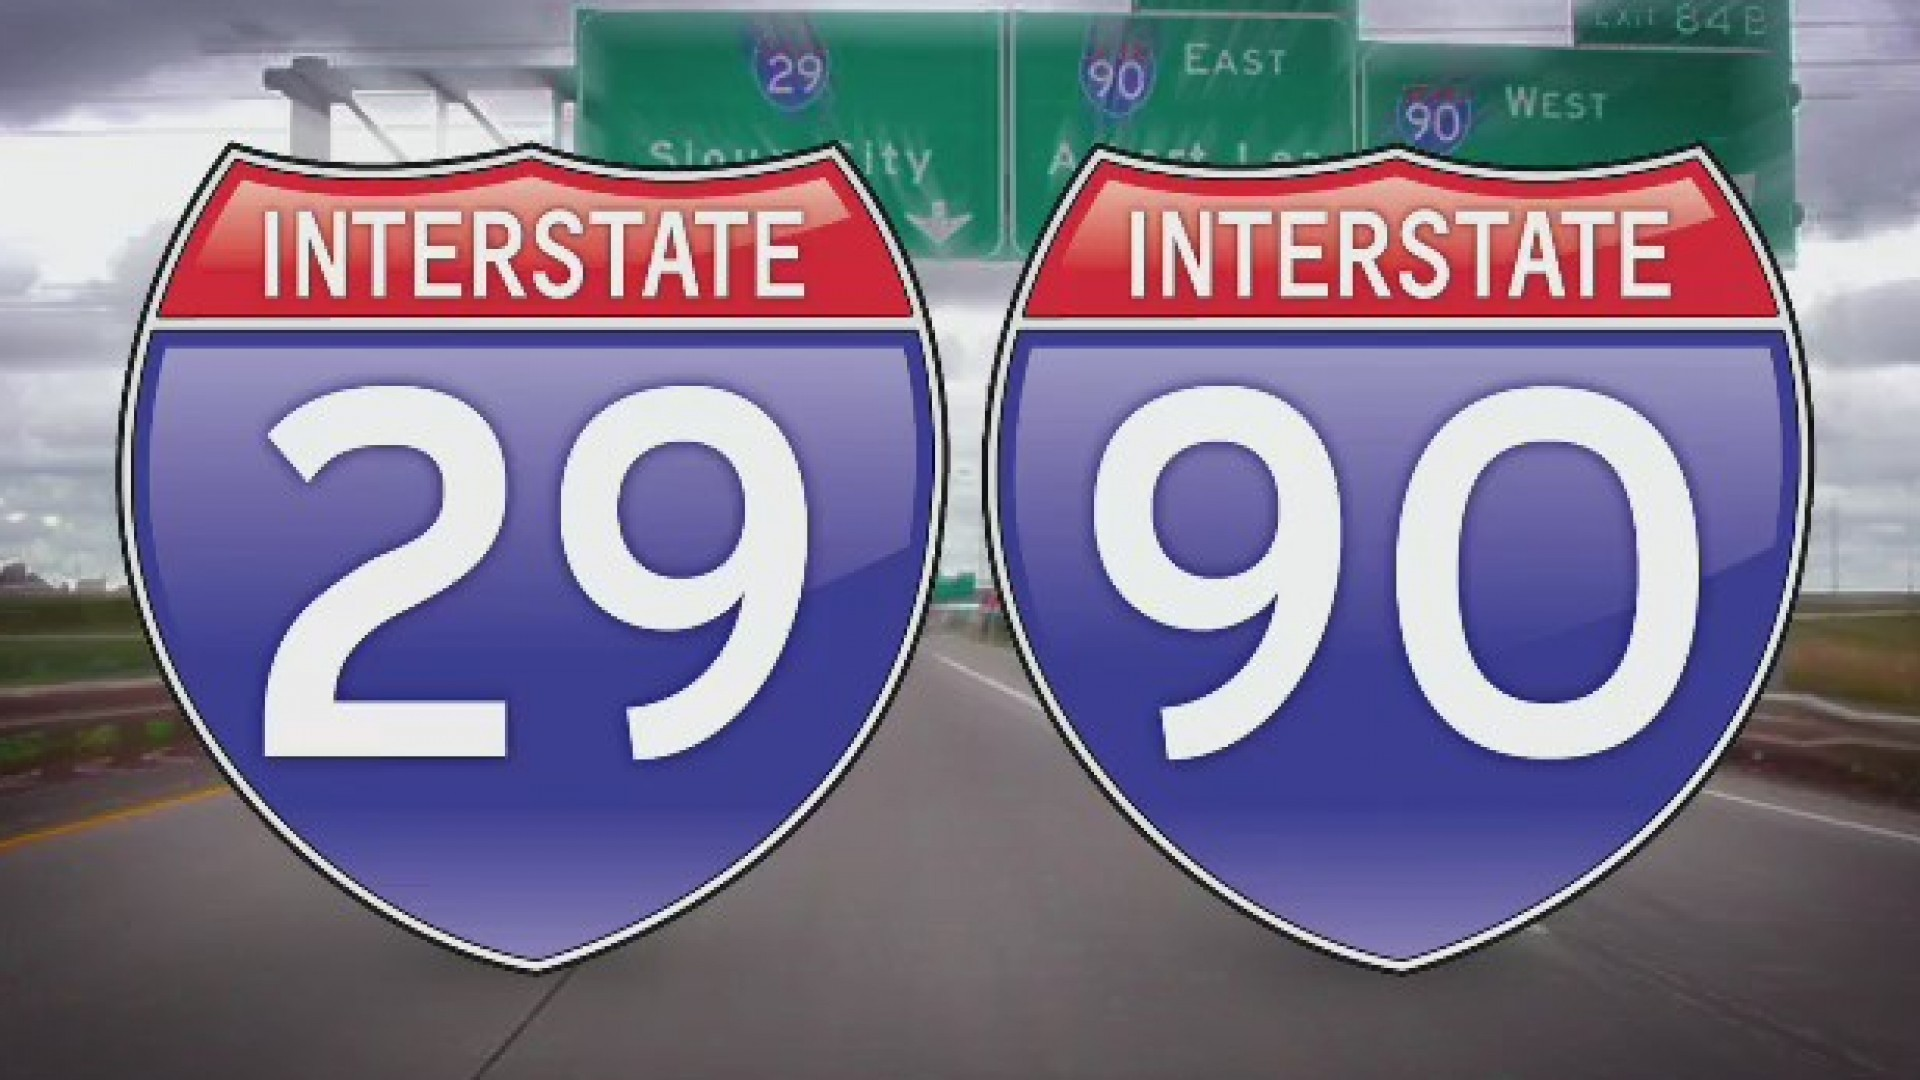 DOT routine bridge work at I-90, I-29 interchange Tuesday